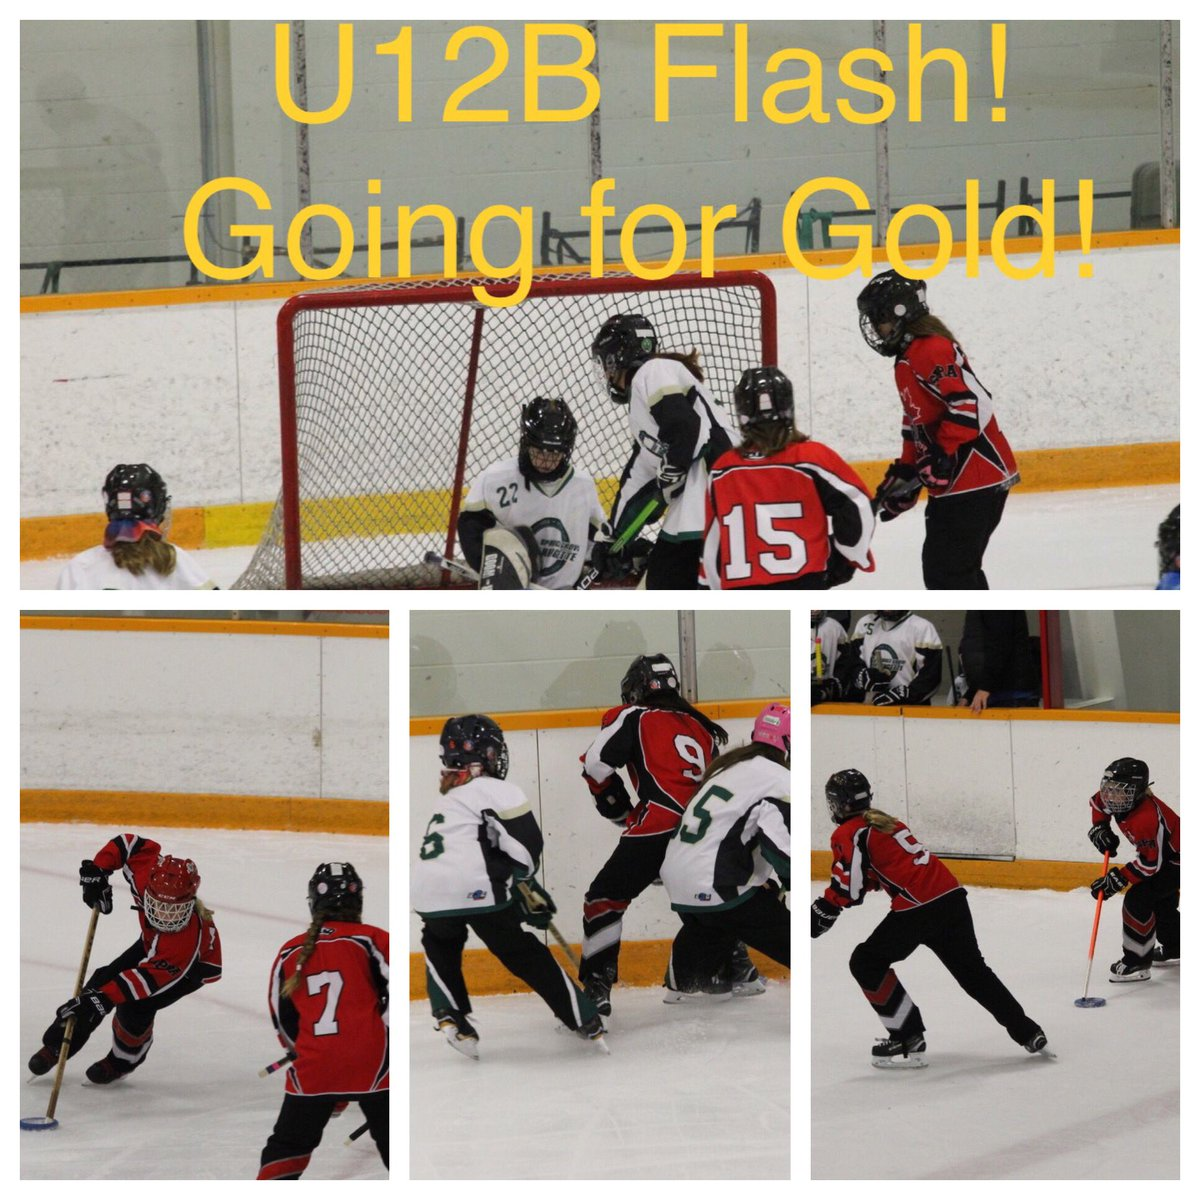 Good luck to the U12B Flash!  Going for Gold this afternoon!  #spra #turkeyring #ringettetournament pic.twitter.com/um0CjaAaFd